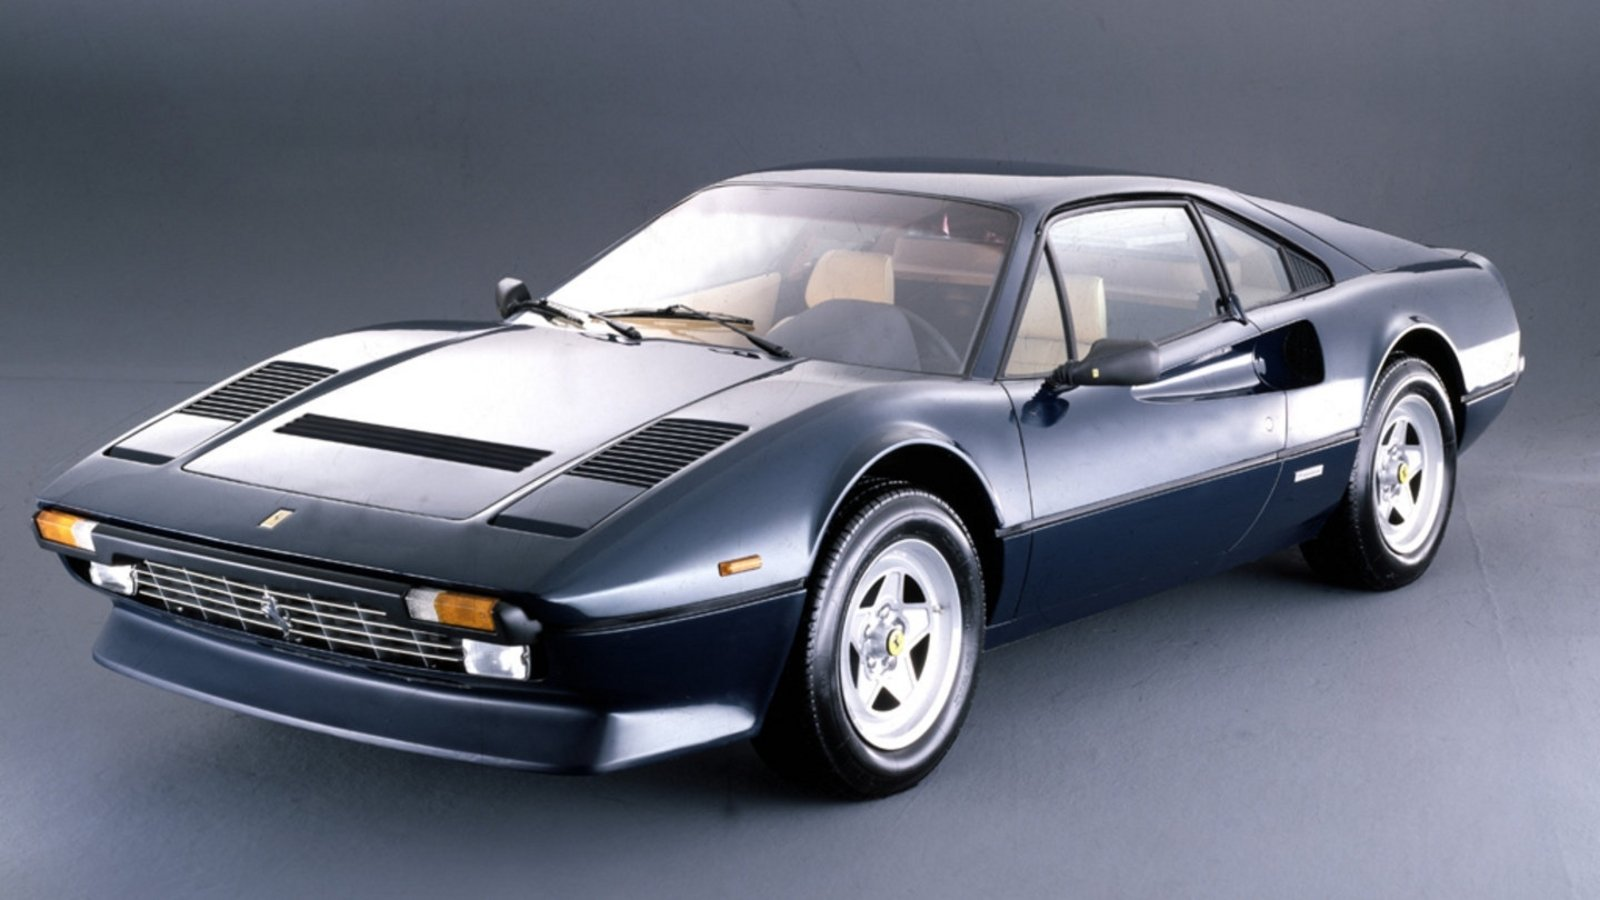 1982 1985 ferrari 308 gtb quattrovalvole review top speed. Black Bedroom Furniture Sets. Home Design Ideas